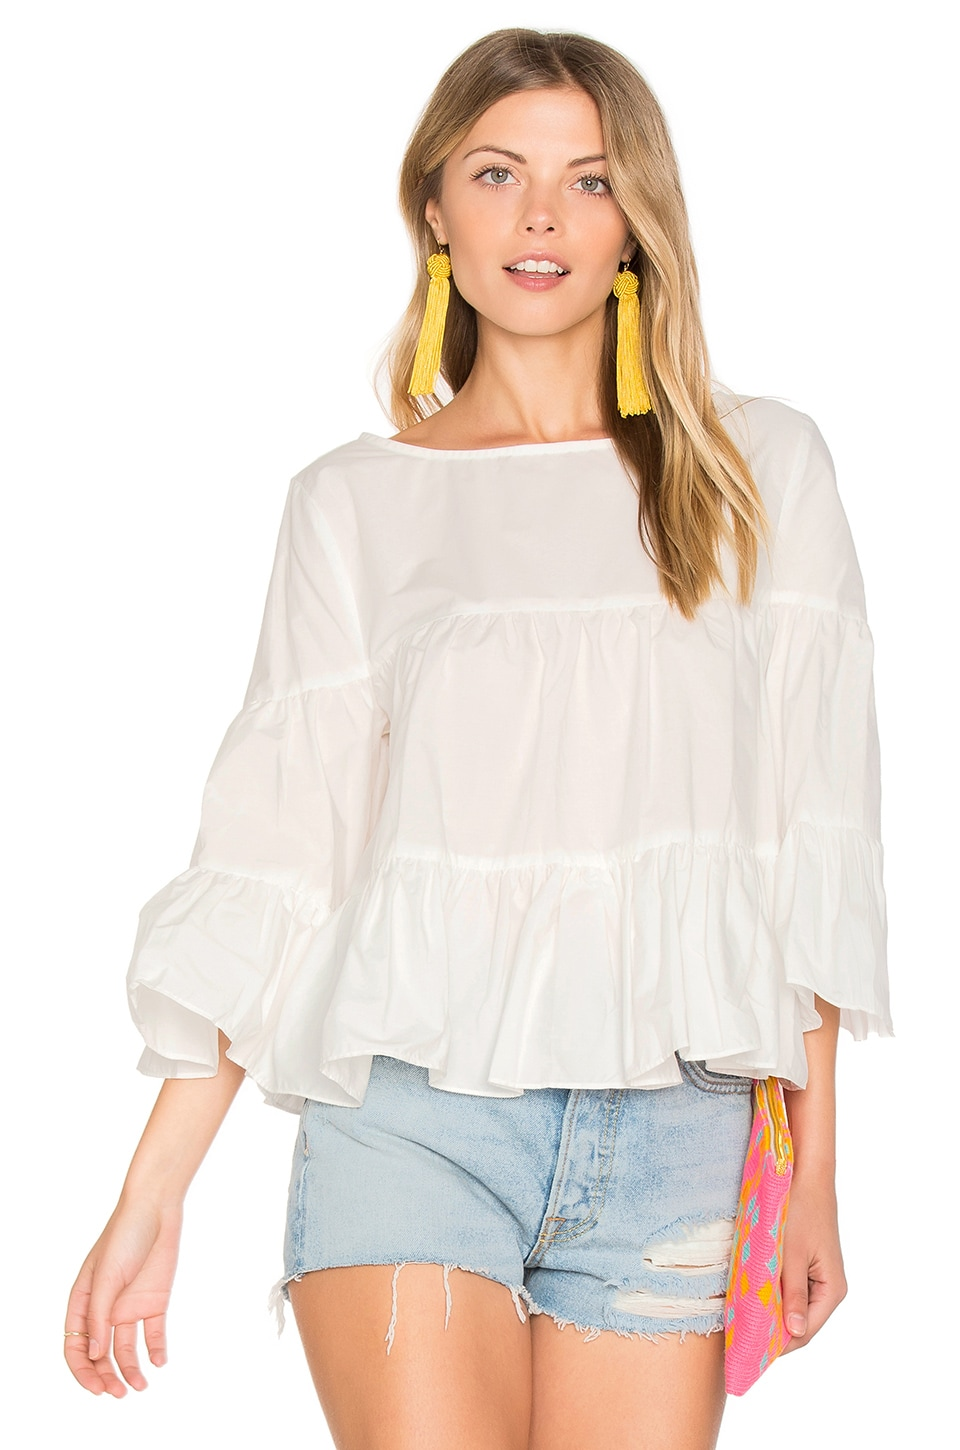 Palm Beach Ruffle Top by Central Park West